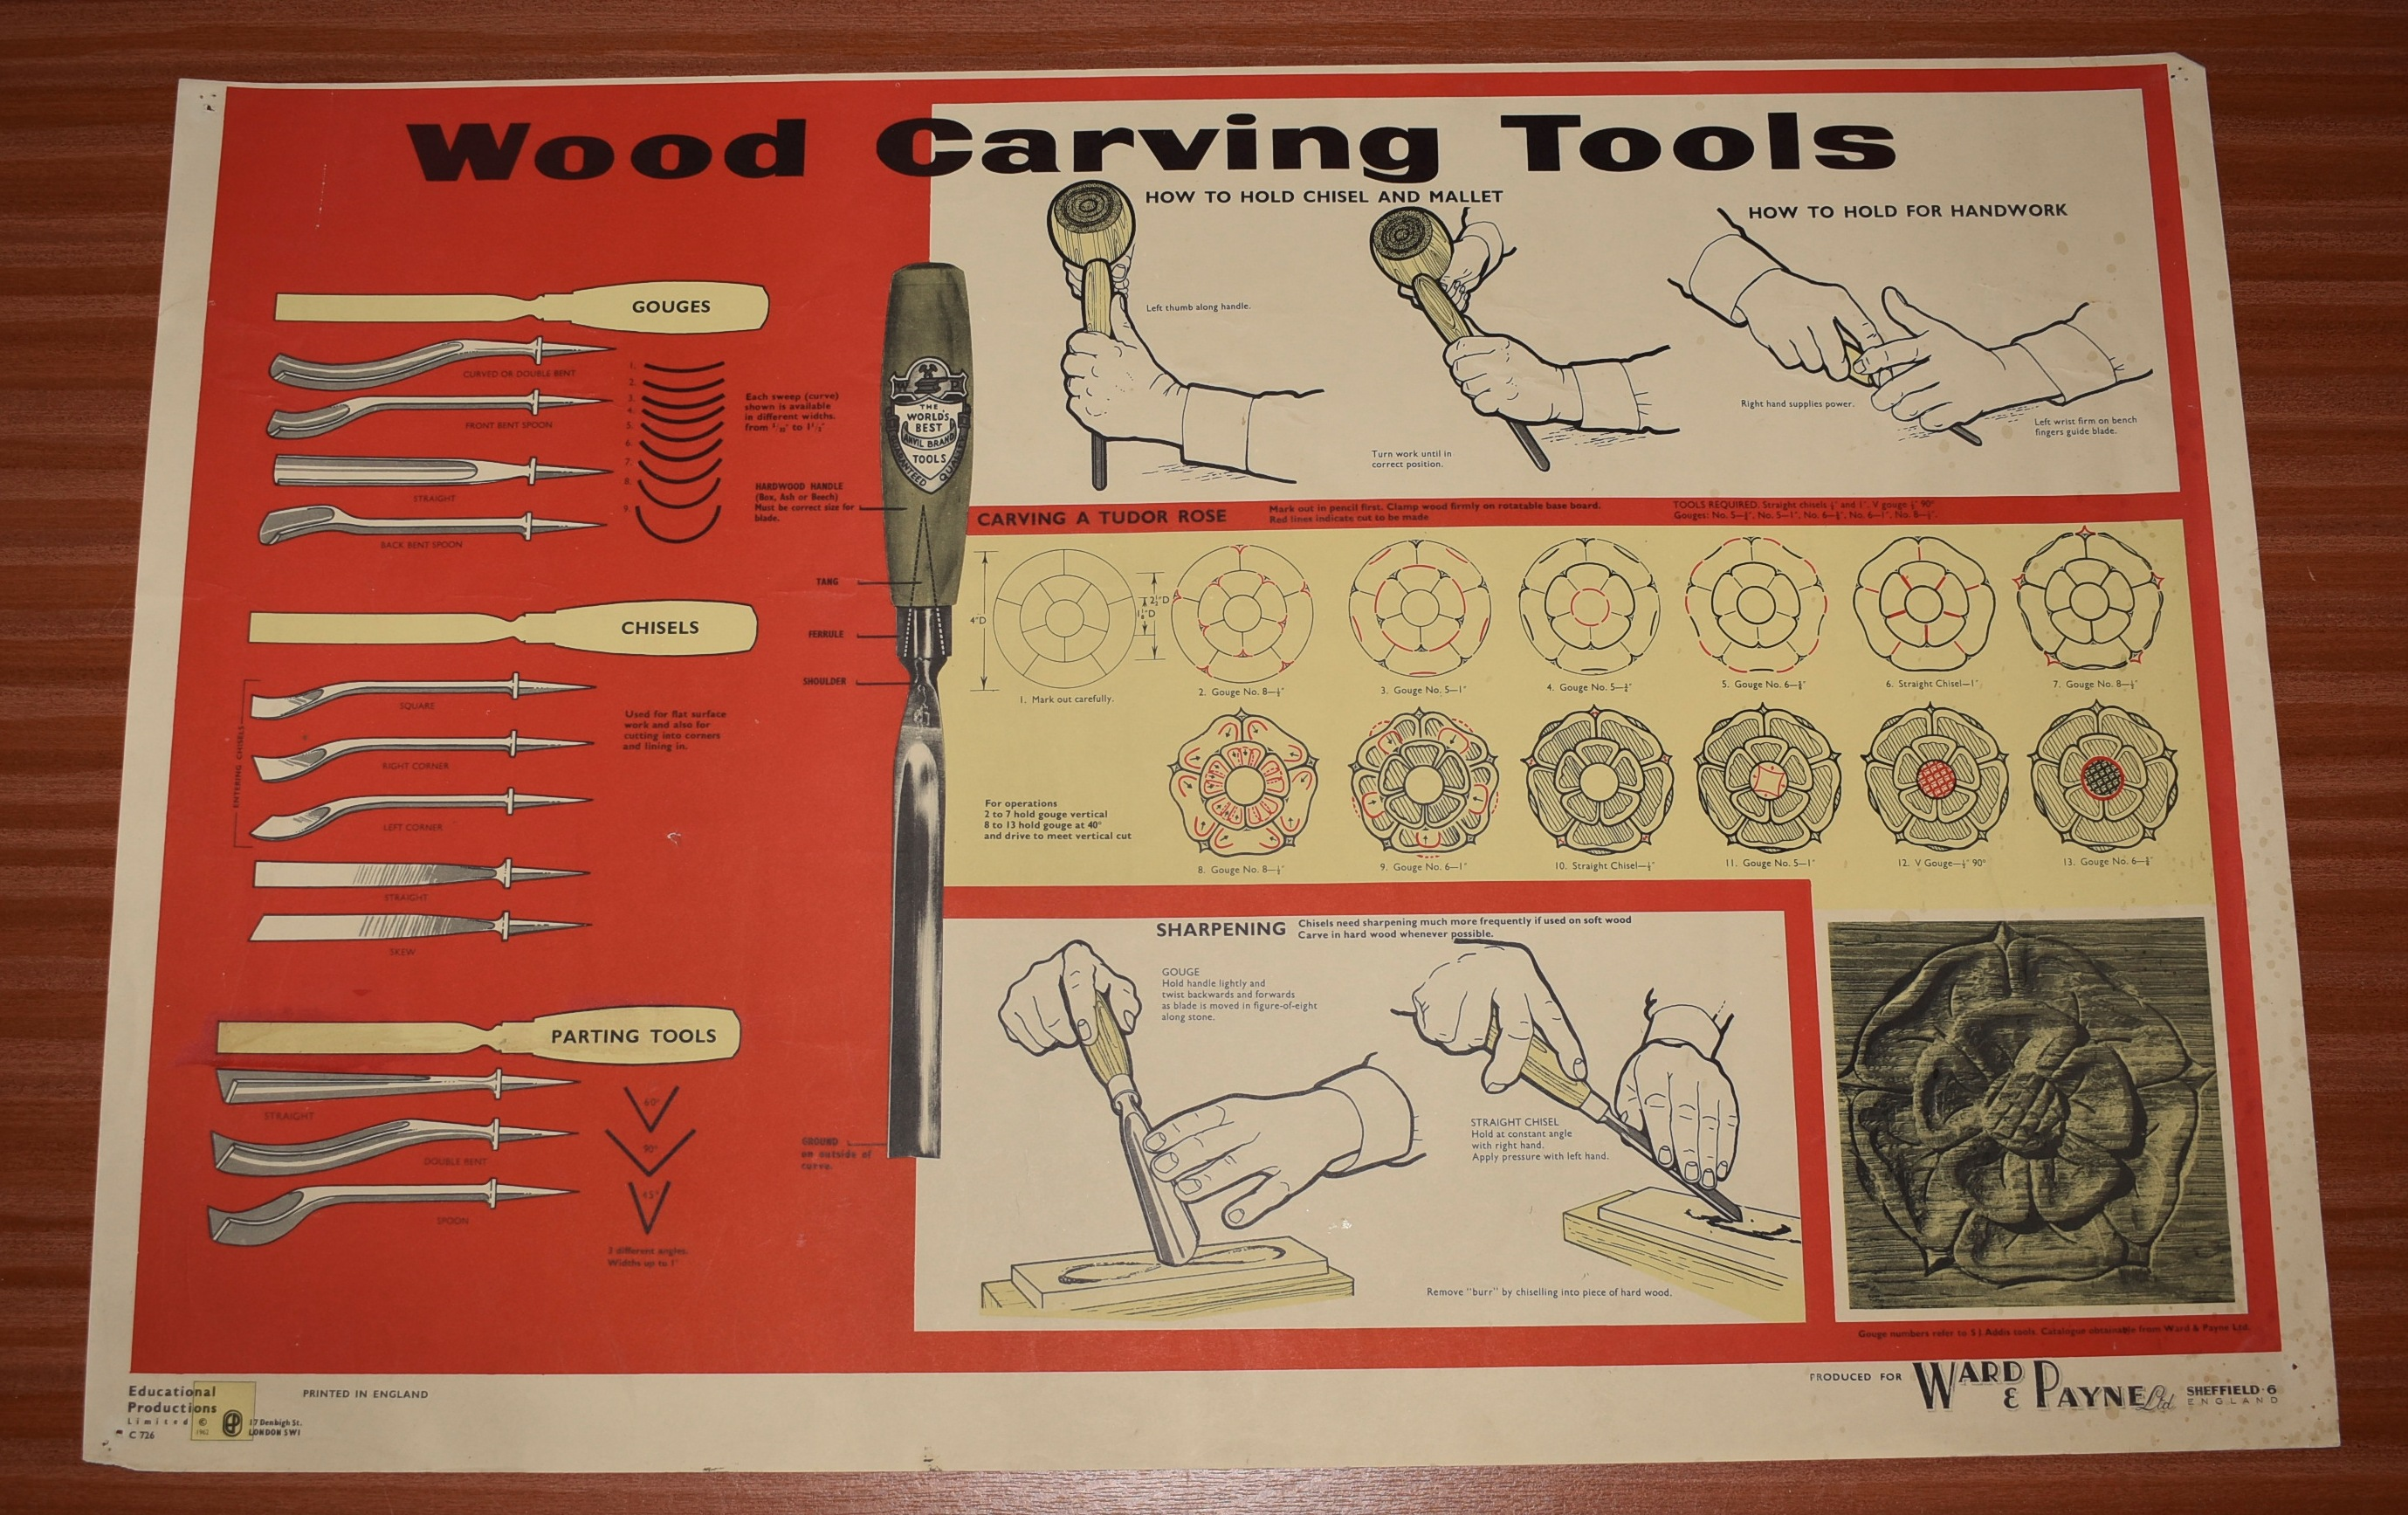 Image for ORIGINAL POSTER.  Wood Carving Tools. Gouges, Chisels, Parting Tools